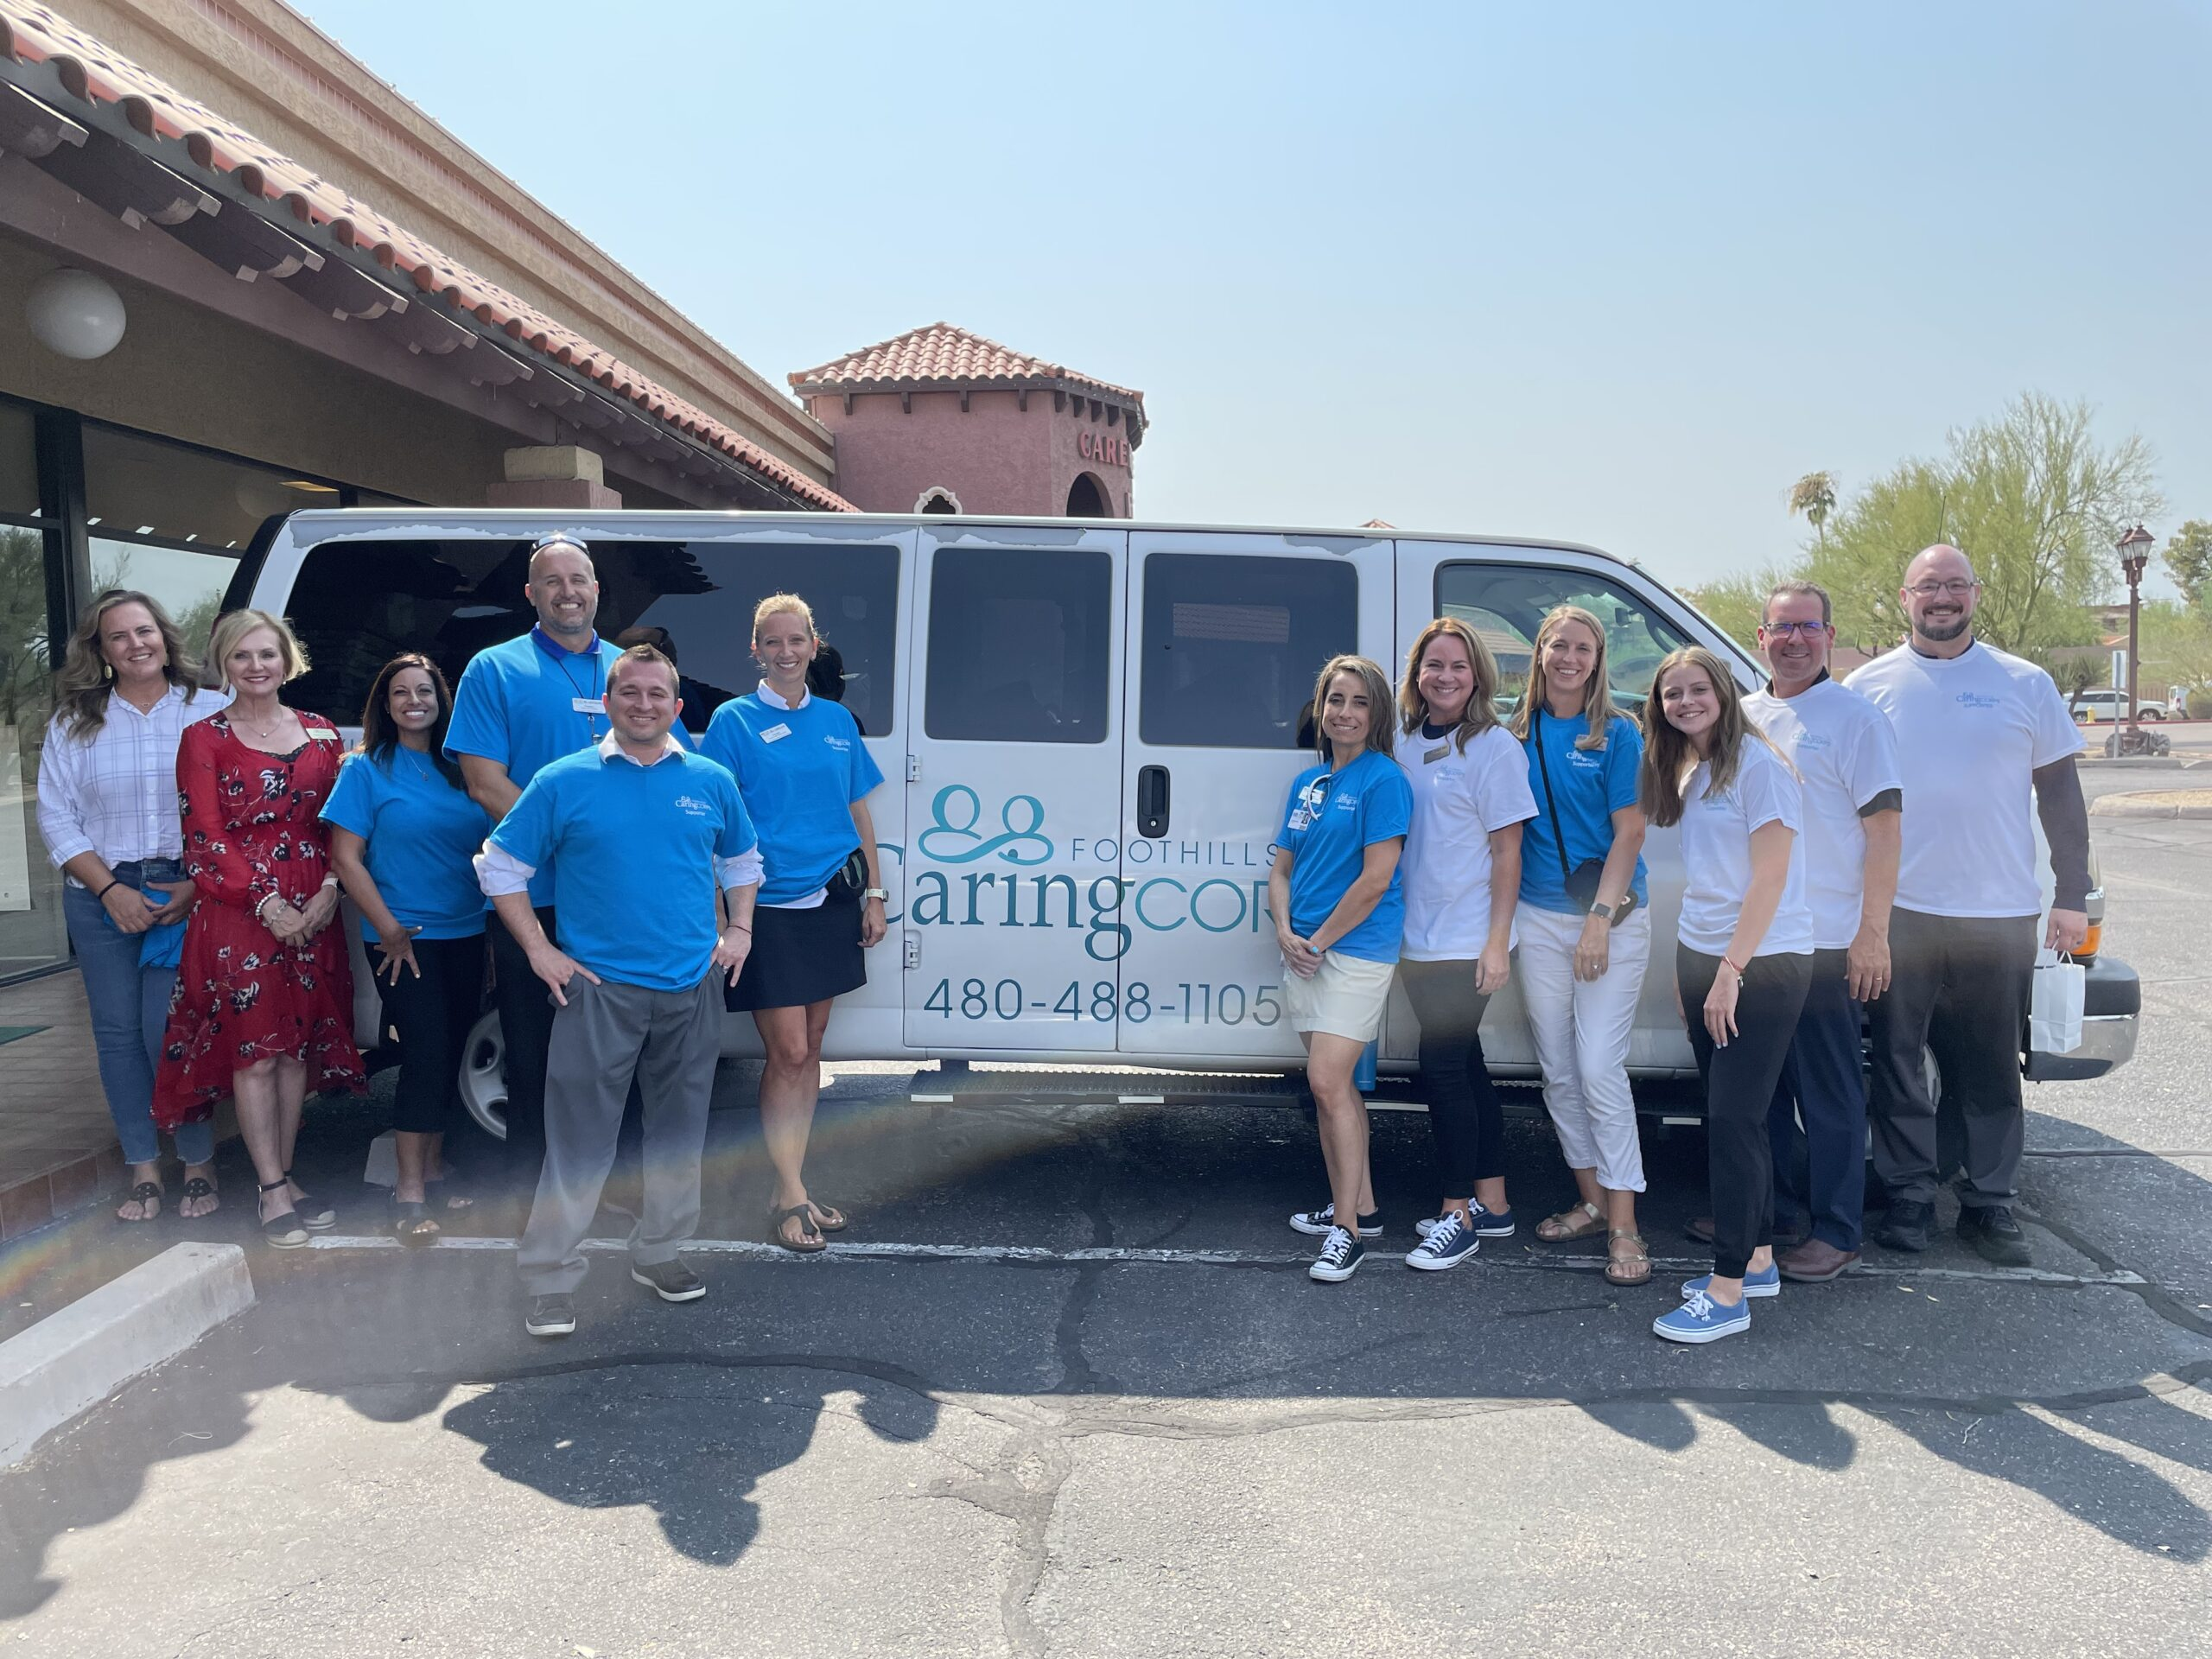 Administrators And Foothills Caring Corps